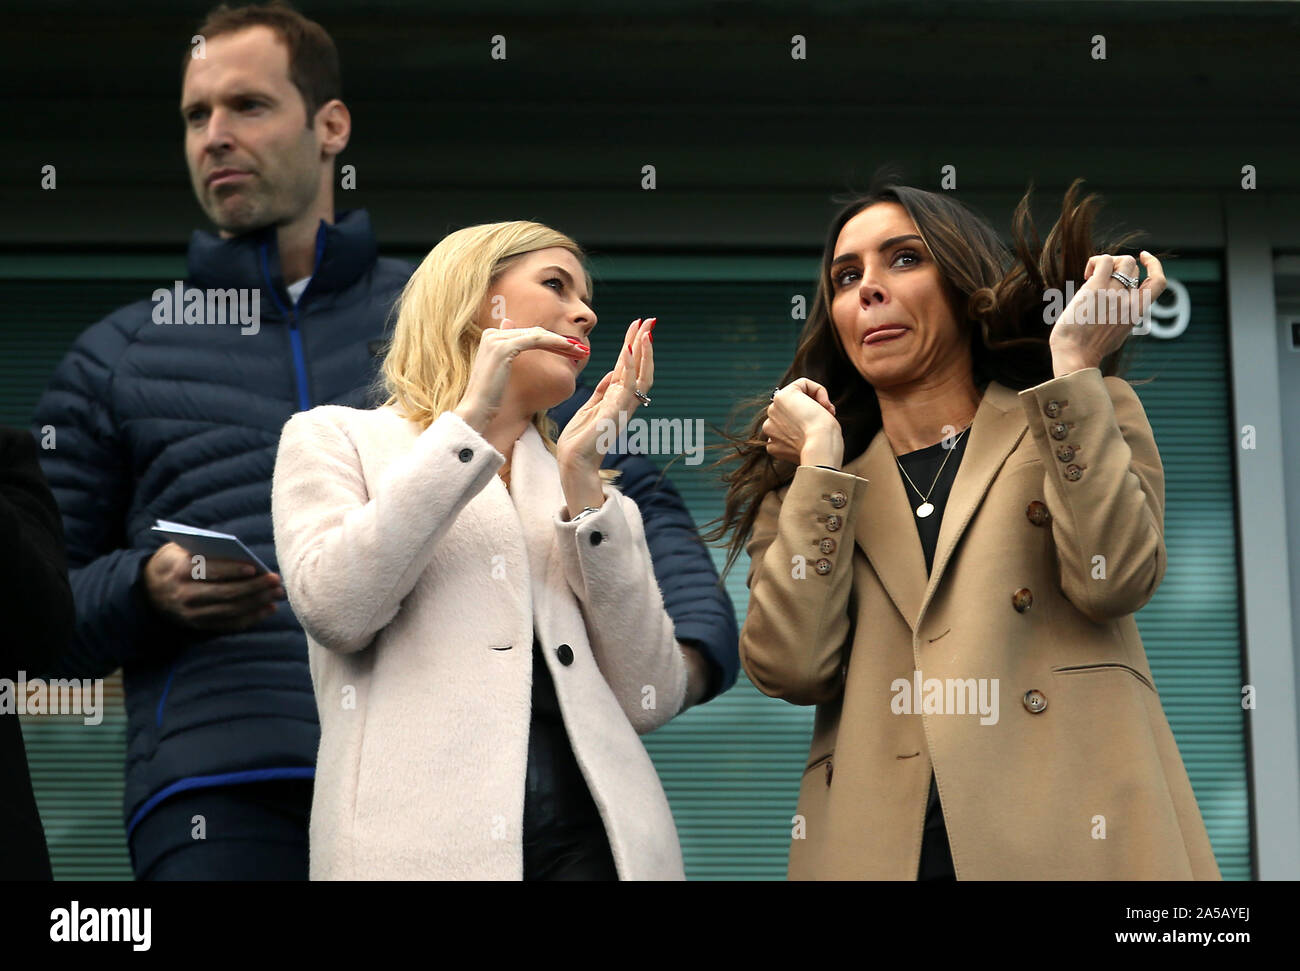 Christine Lampard Right Wife Of Chelsea Manager Frank Lampard During The Premier League Match At Stamford Bridge London Stock Photo Alamy